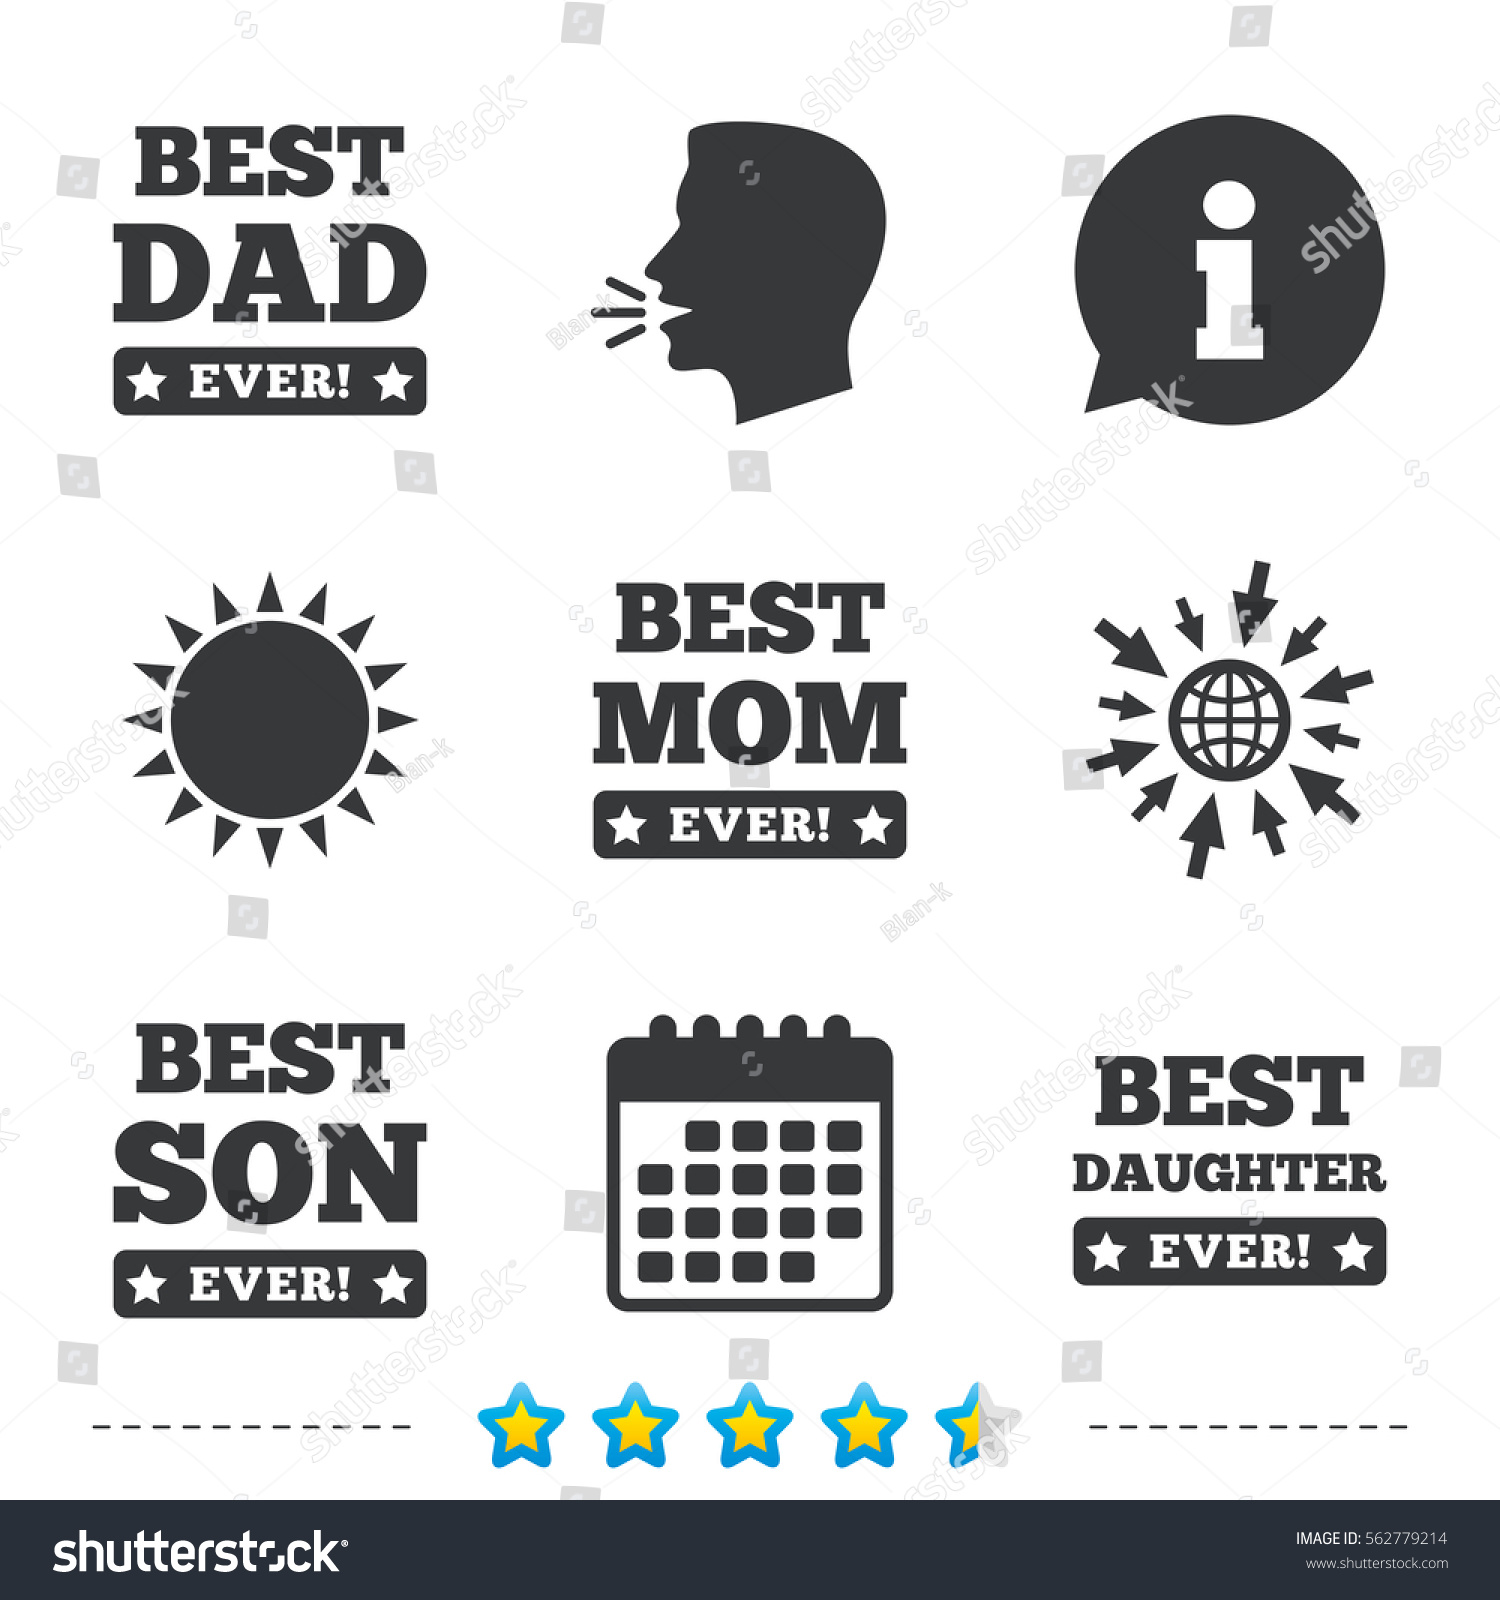 Best mom dad son daughter icons stock vector 562779214 shutterstock best mom and dad son and daughter icons awards with exclamation mark symbols biocorpaavc